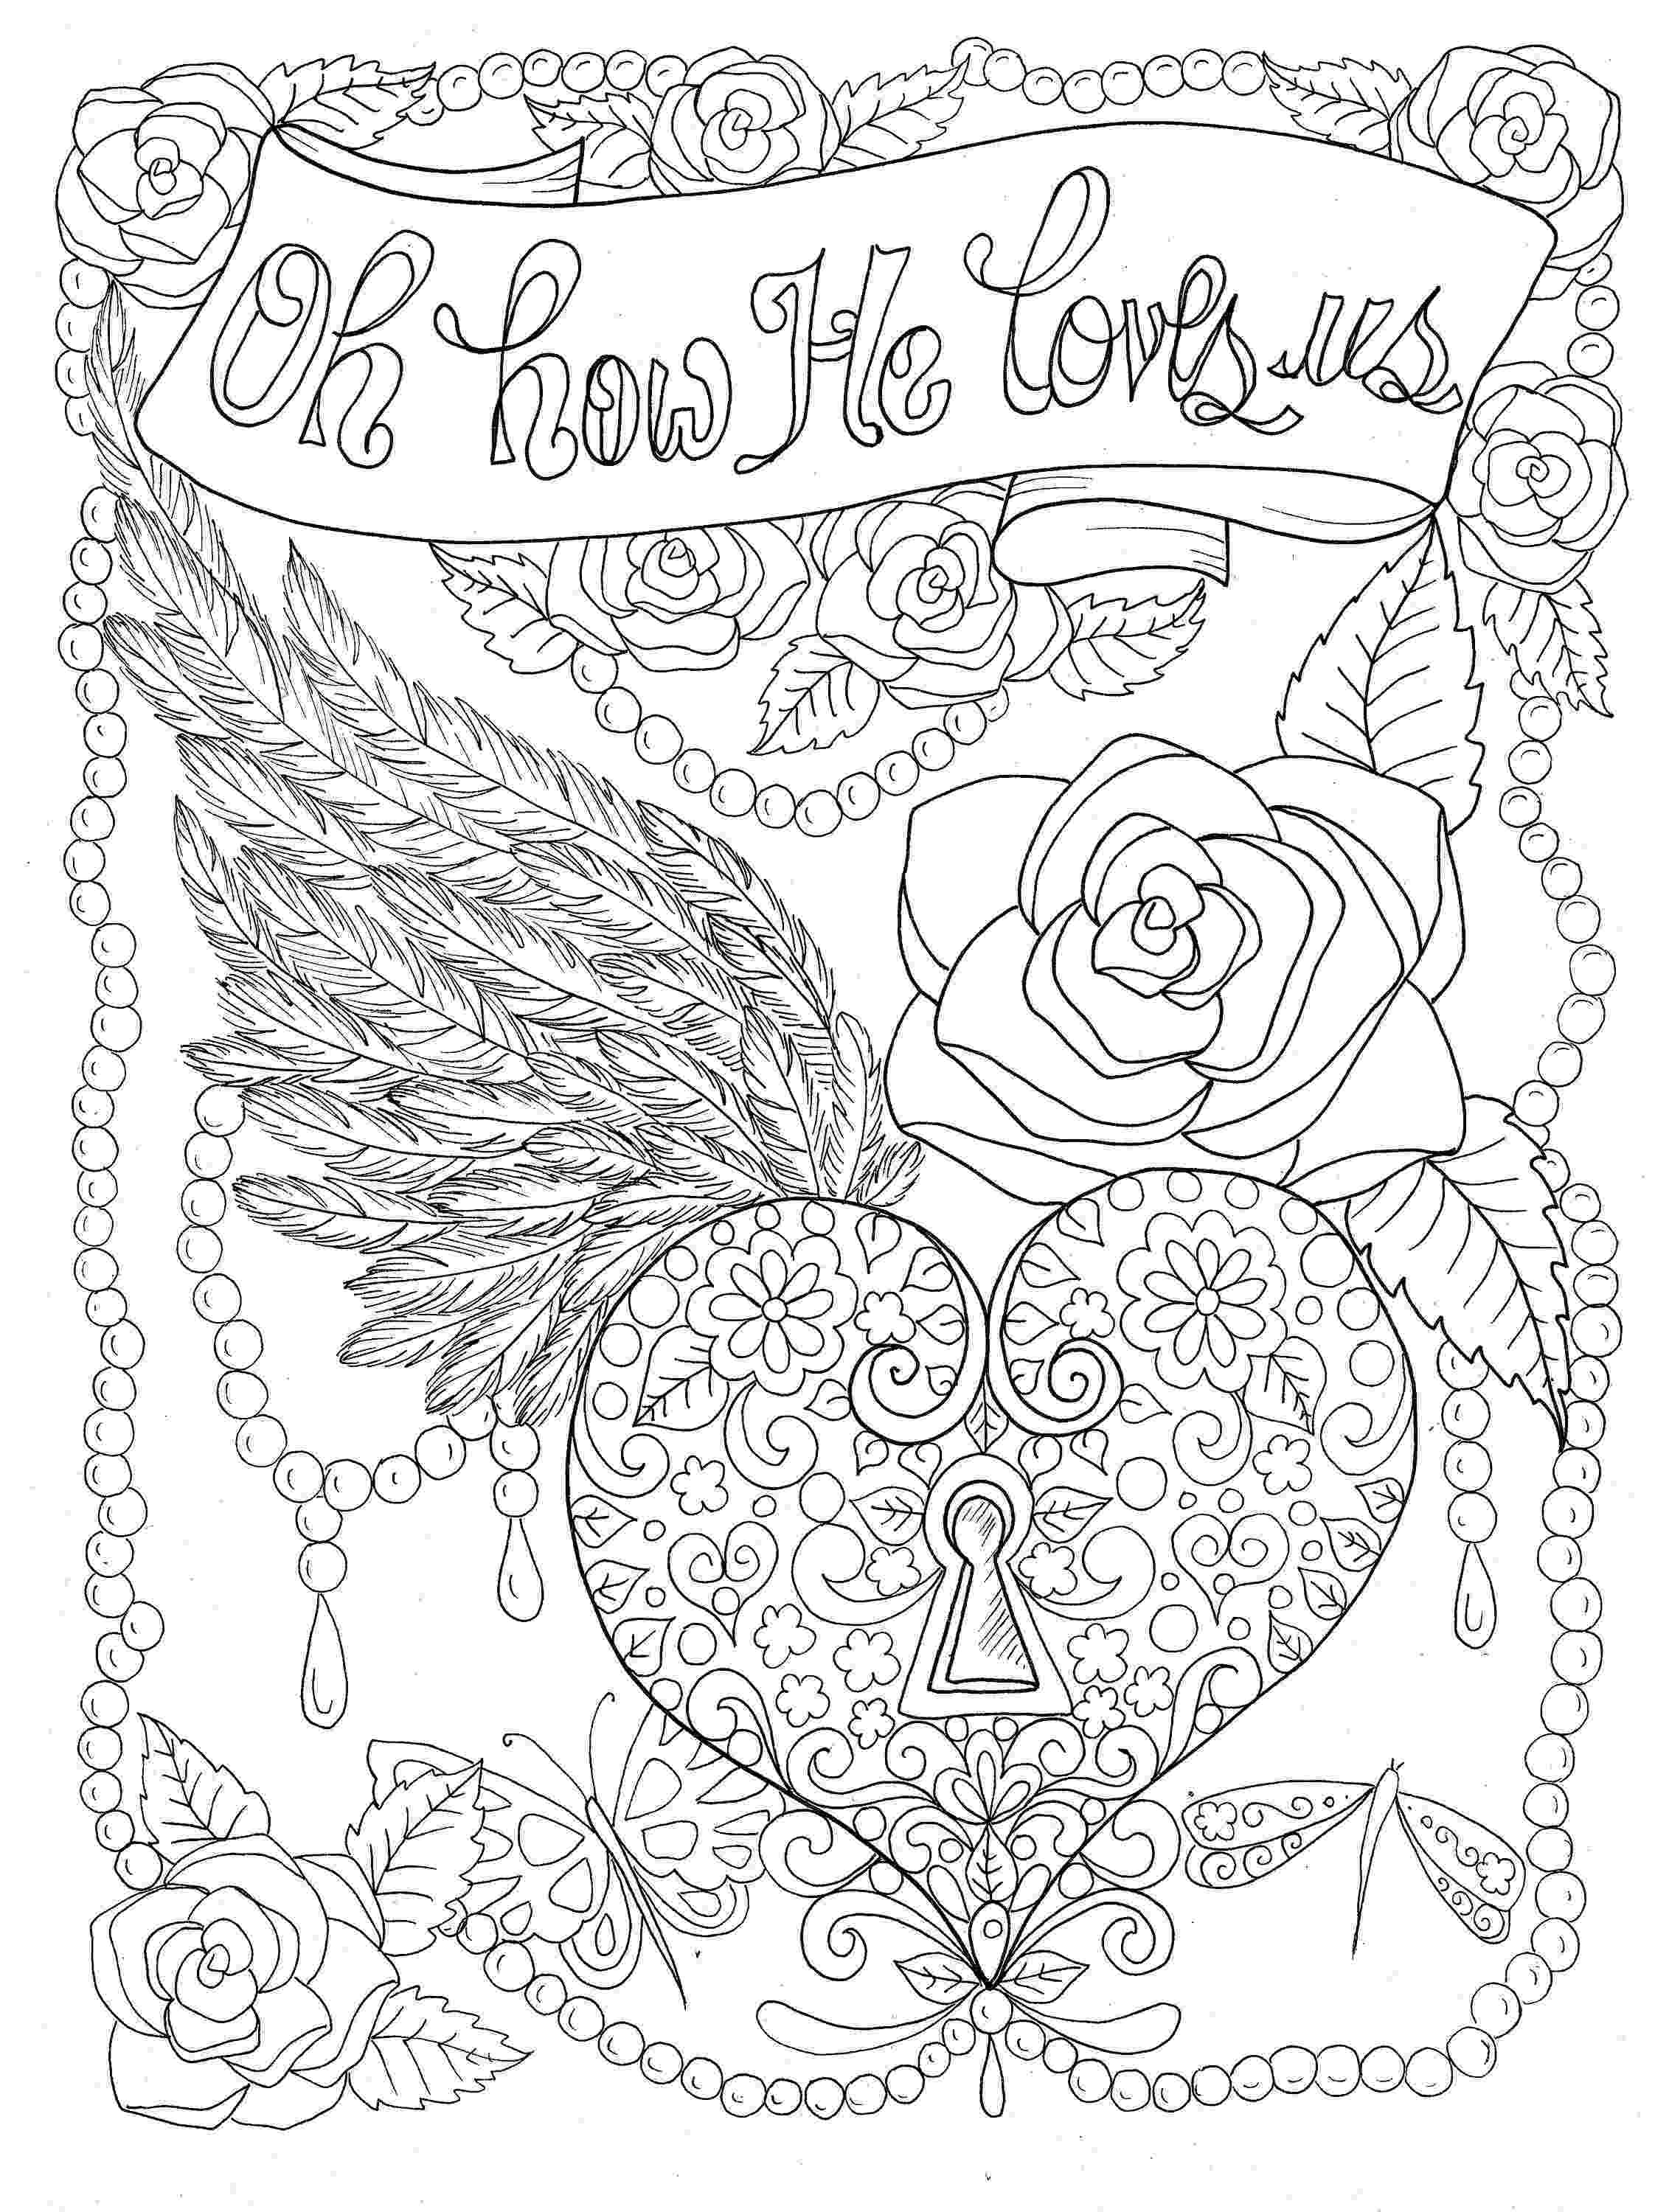 christian coloring pages for adults 220 best images about christian art therapy on pinterest pages coloring christian for adults